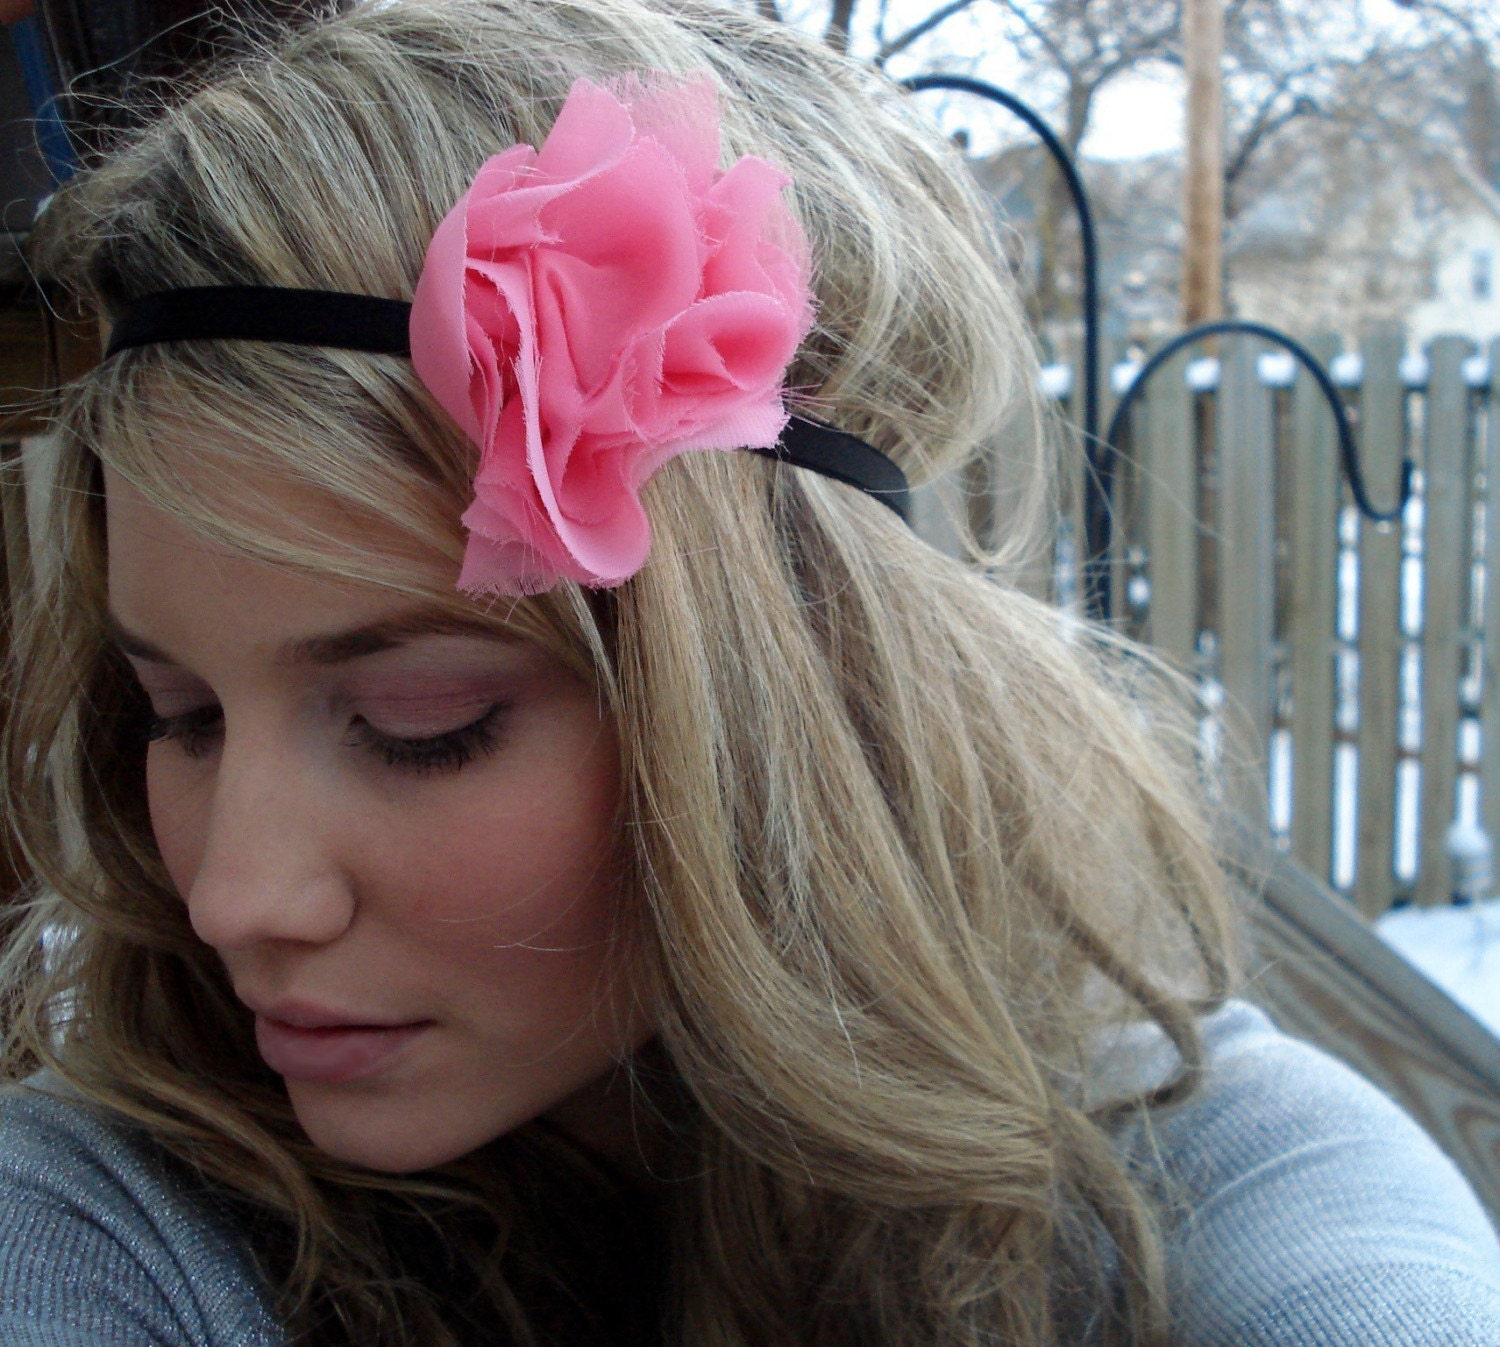 the dreamy II - Large Chiffon Fluff Headband in Pink Coral on Black - Free Worldwide Shipping